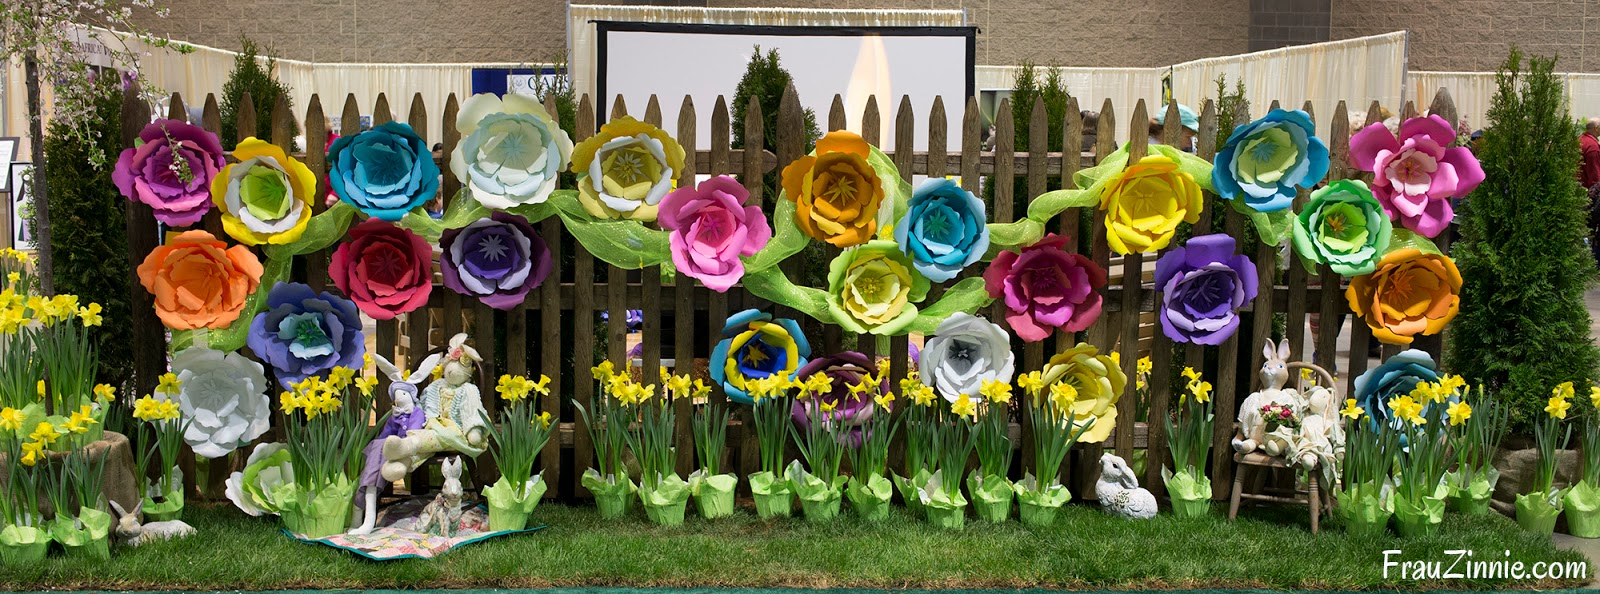 Lots to see, learn at 37th annual Connecticut Flower and Garden Show Federated Garden Club Designs Html on